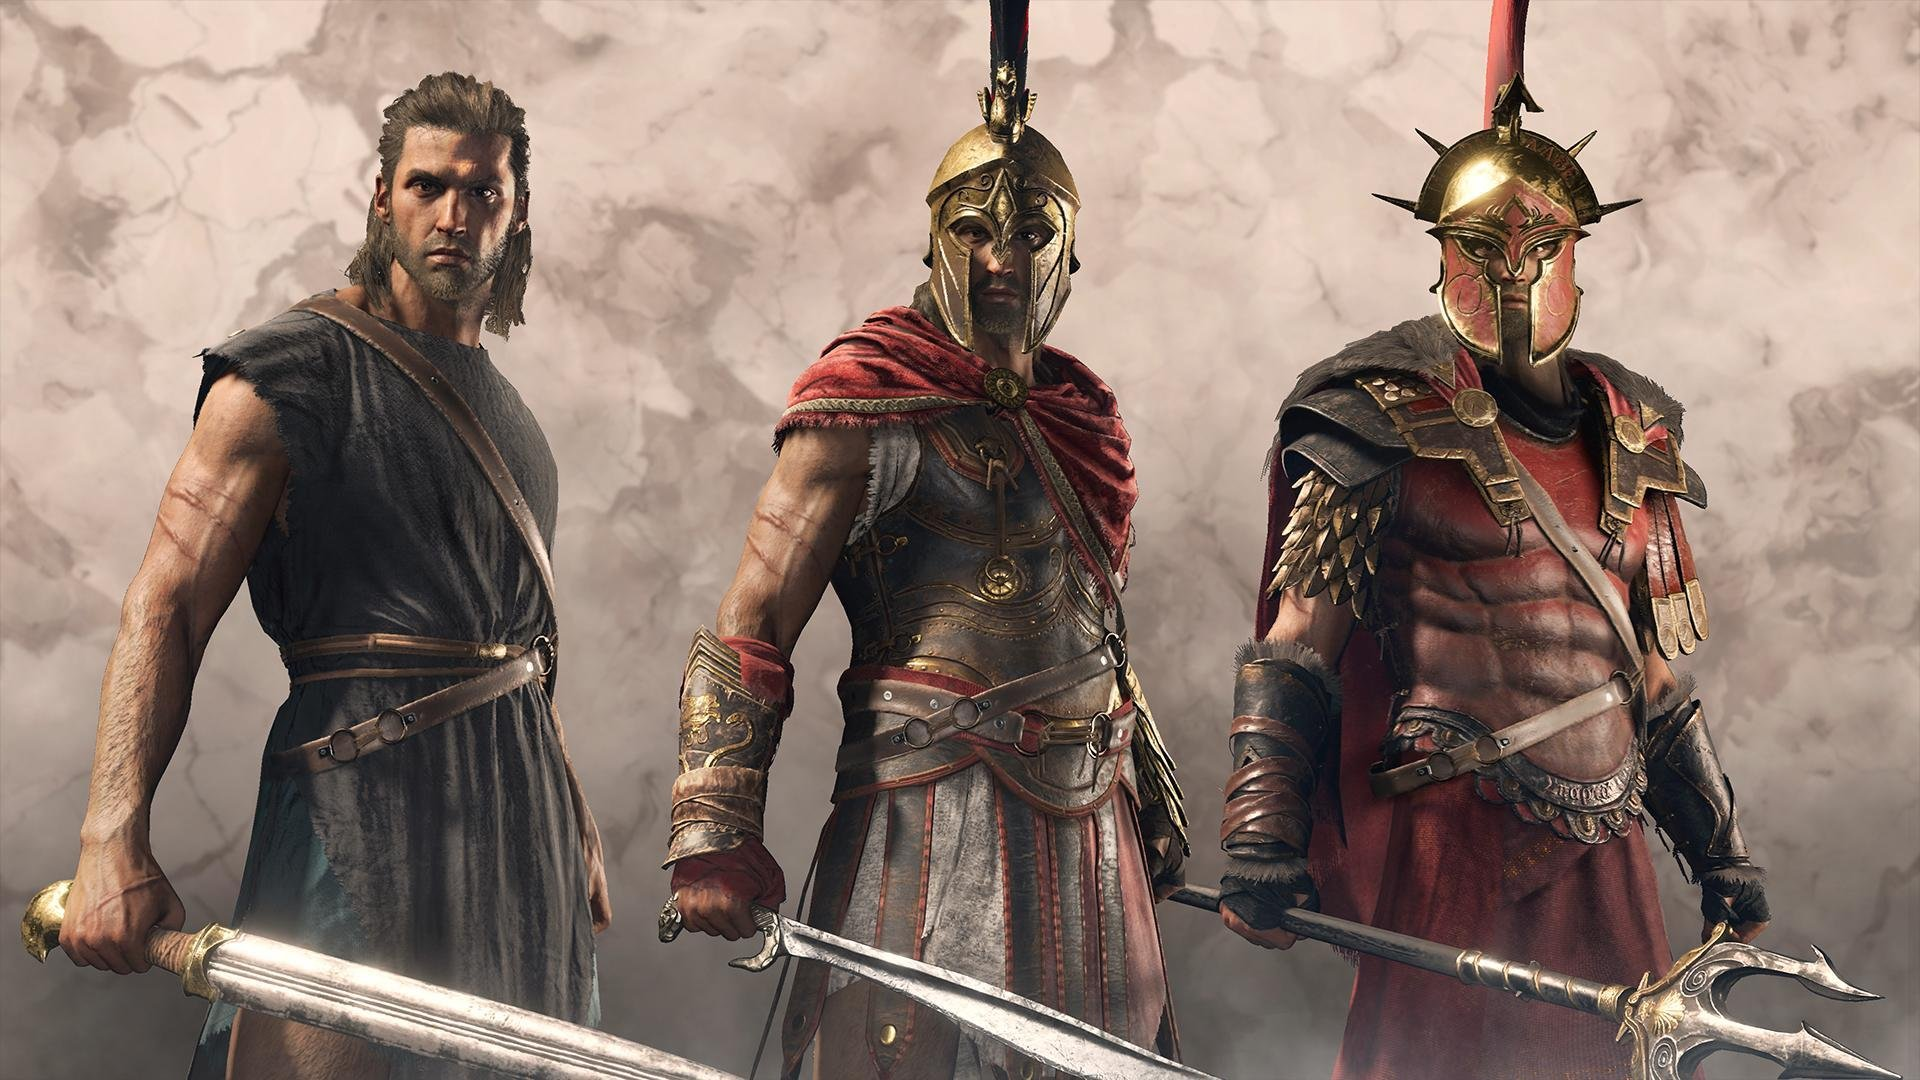 Freedom to choose in Assassins Creed Odyssey